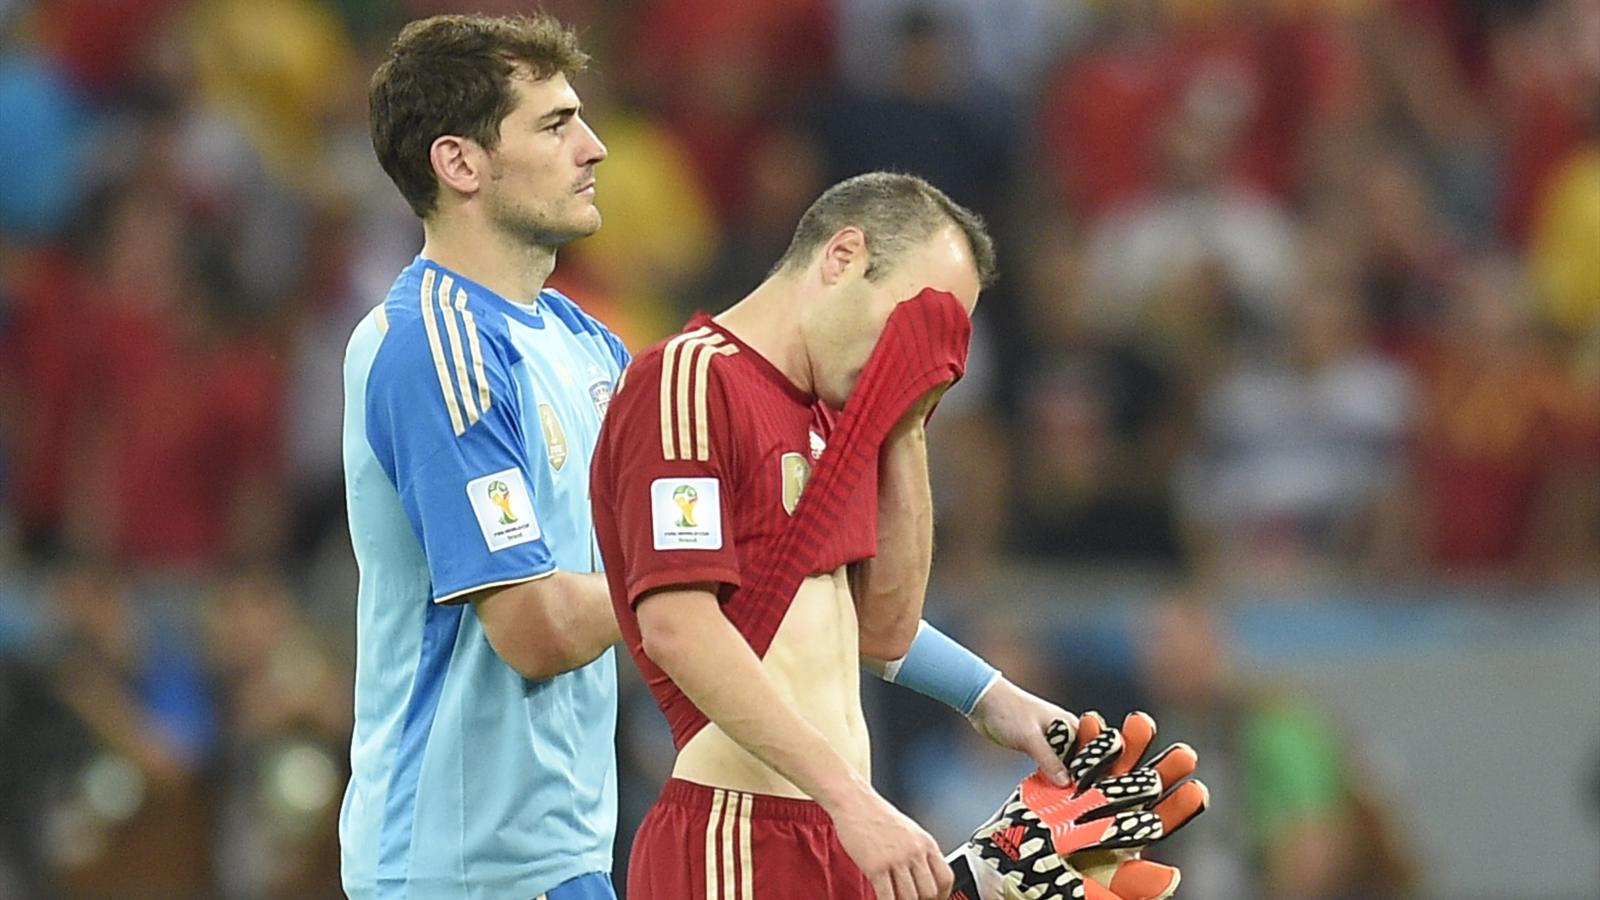 Spain's goalkeeper and captain Iker Casillas and Spain's midfielder Andres Iniesta react after the Group B football match between Spain and Chile in the Maracana Stadium in Rio de Janeiro during the 2014 FIFA World Cup on June 18, 2014.